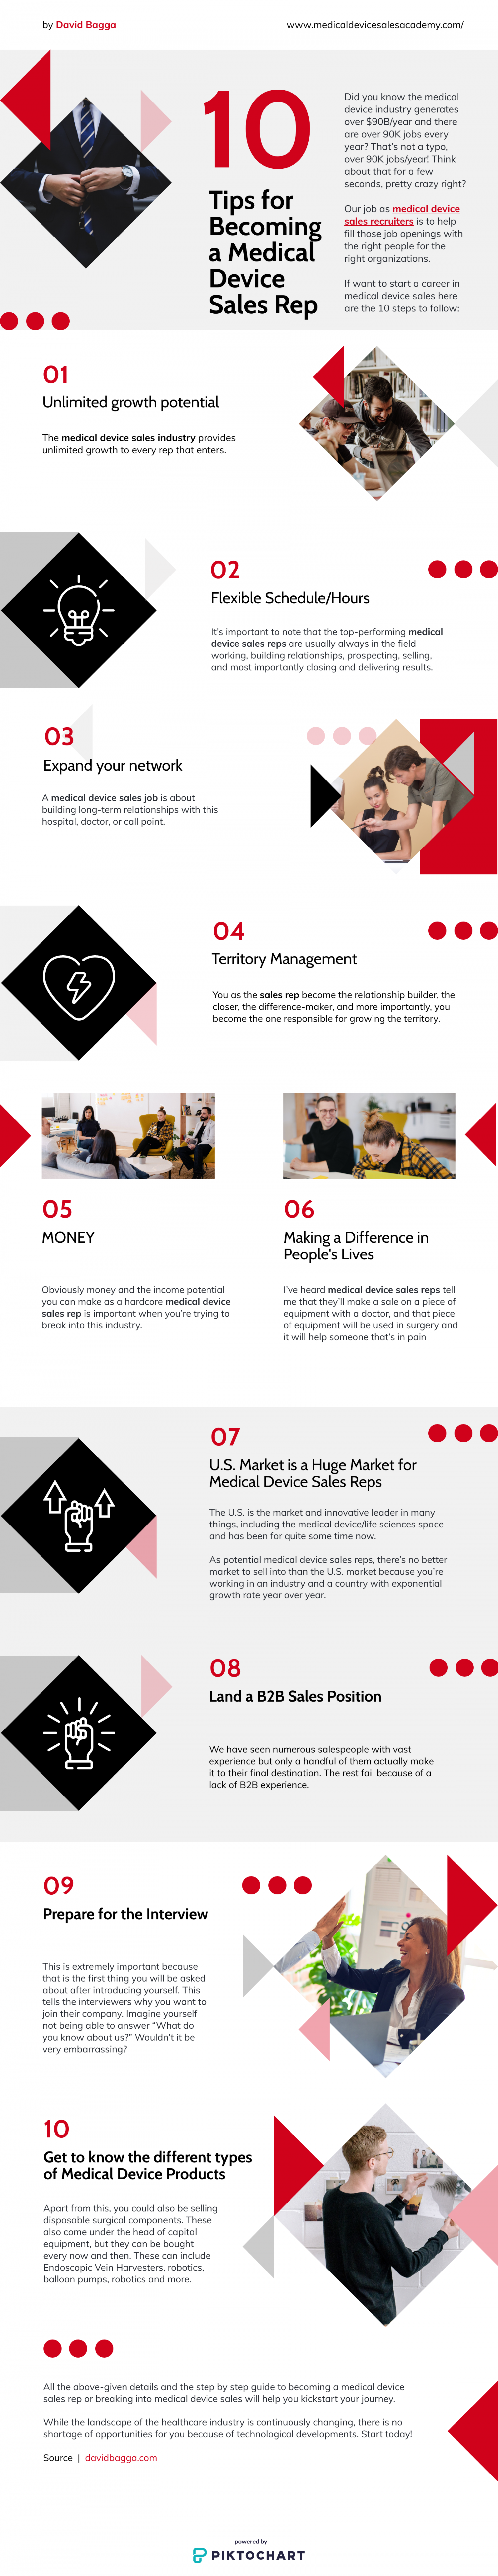 10 Tipsfor  Becoming a Medical Device Sales Rep Infographic